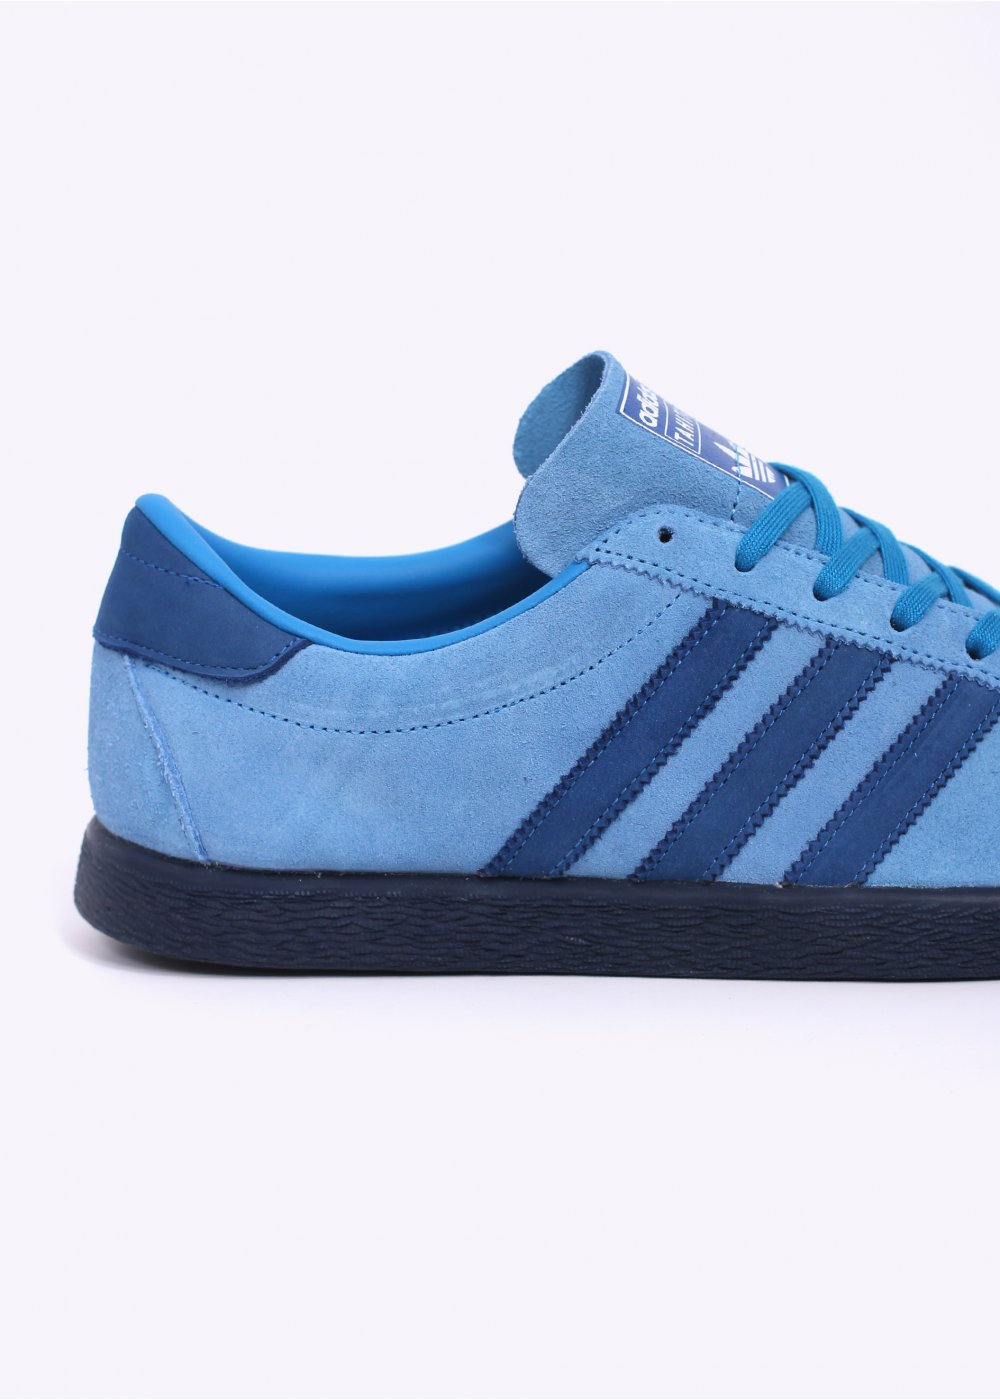 Light Blue Adidas Shoes